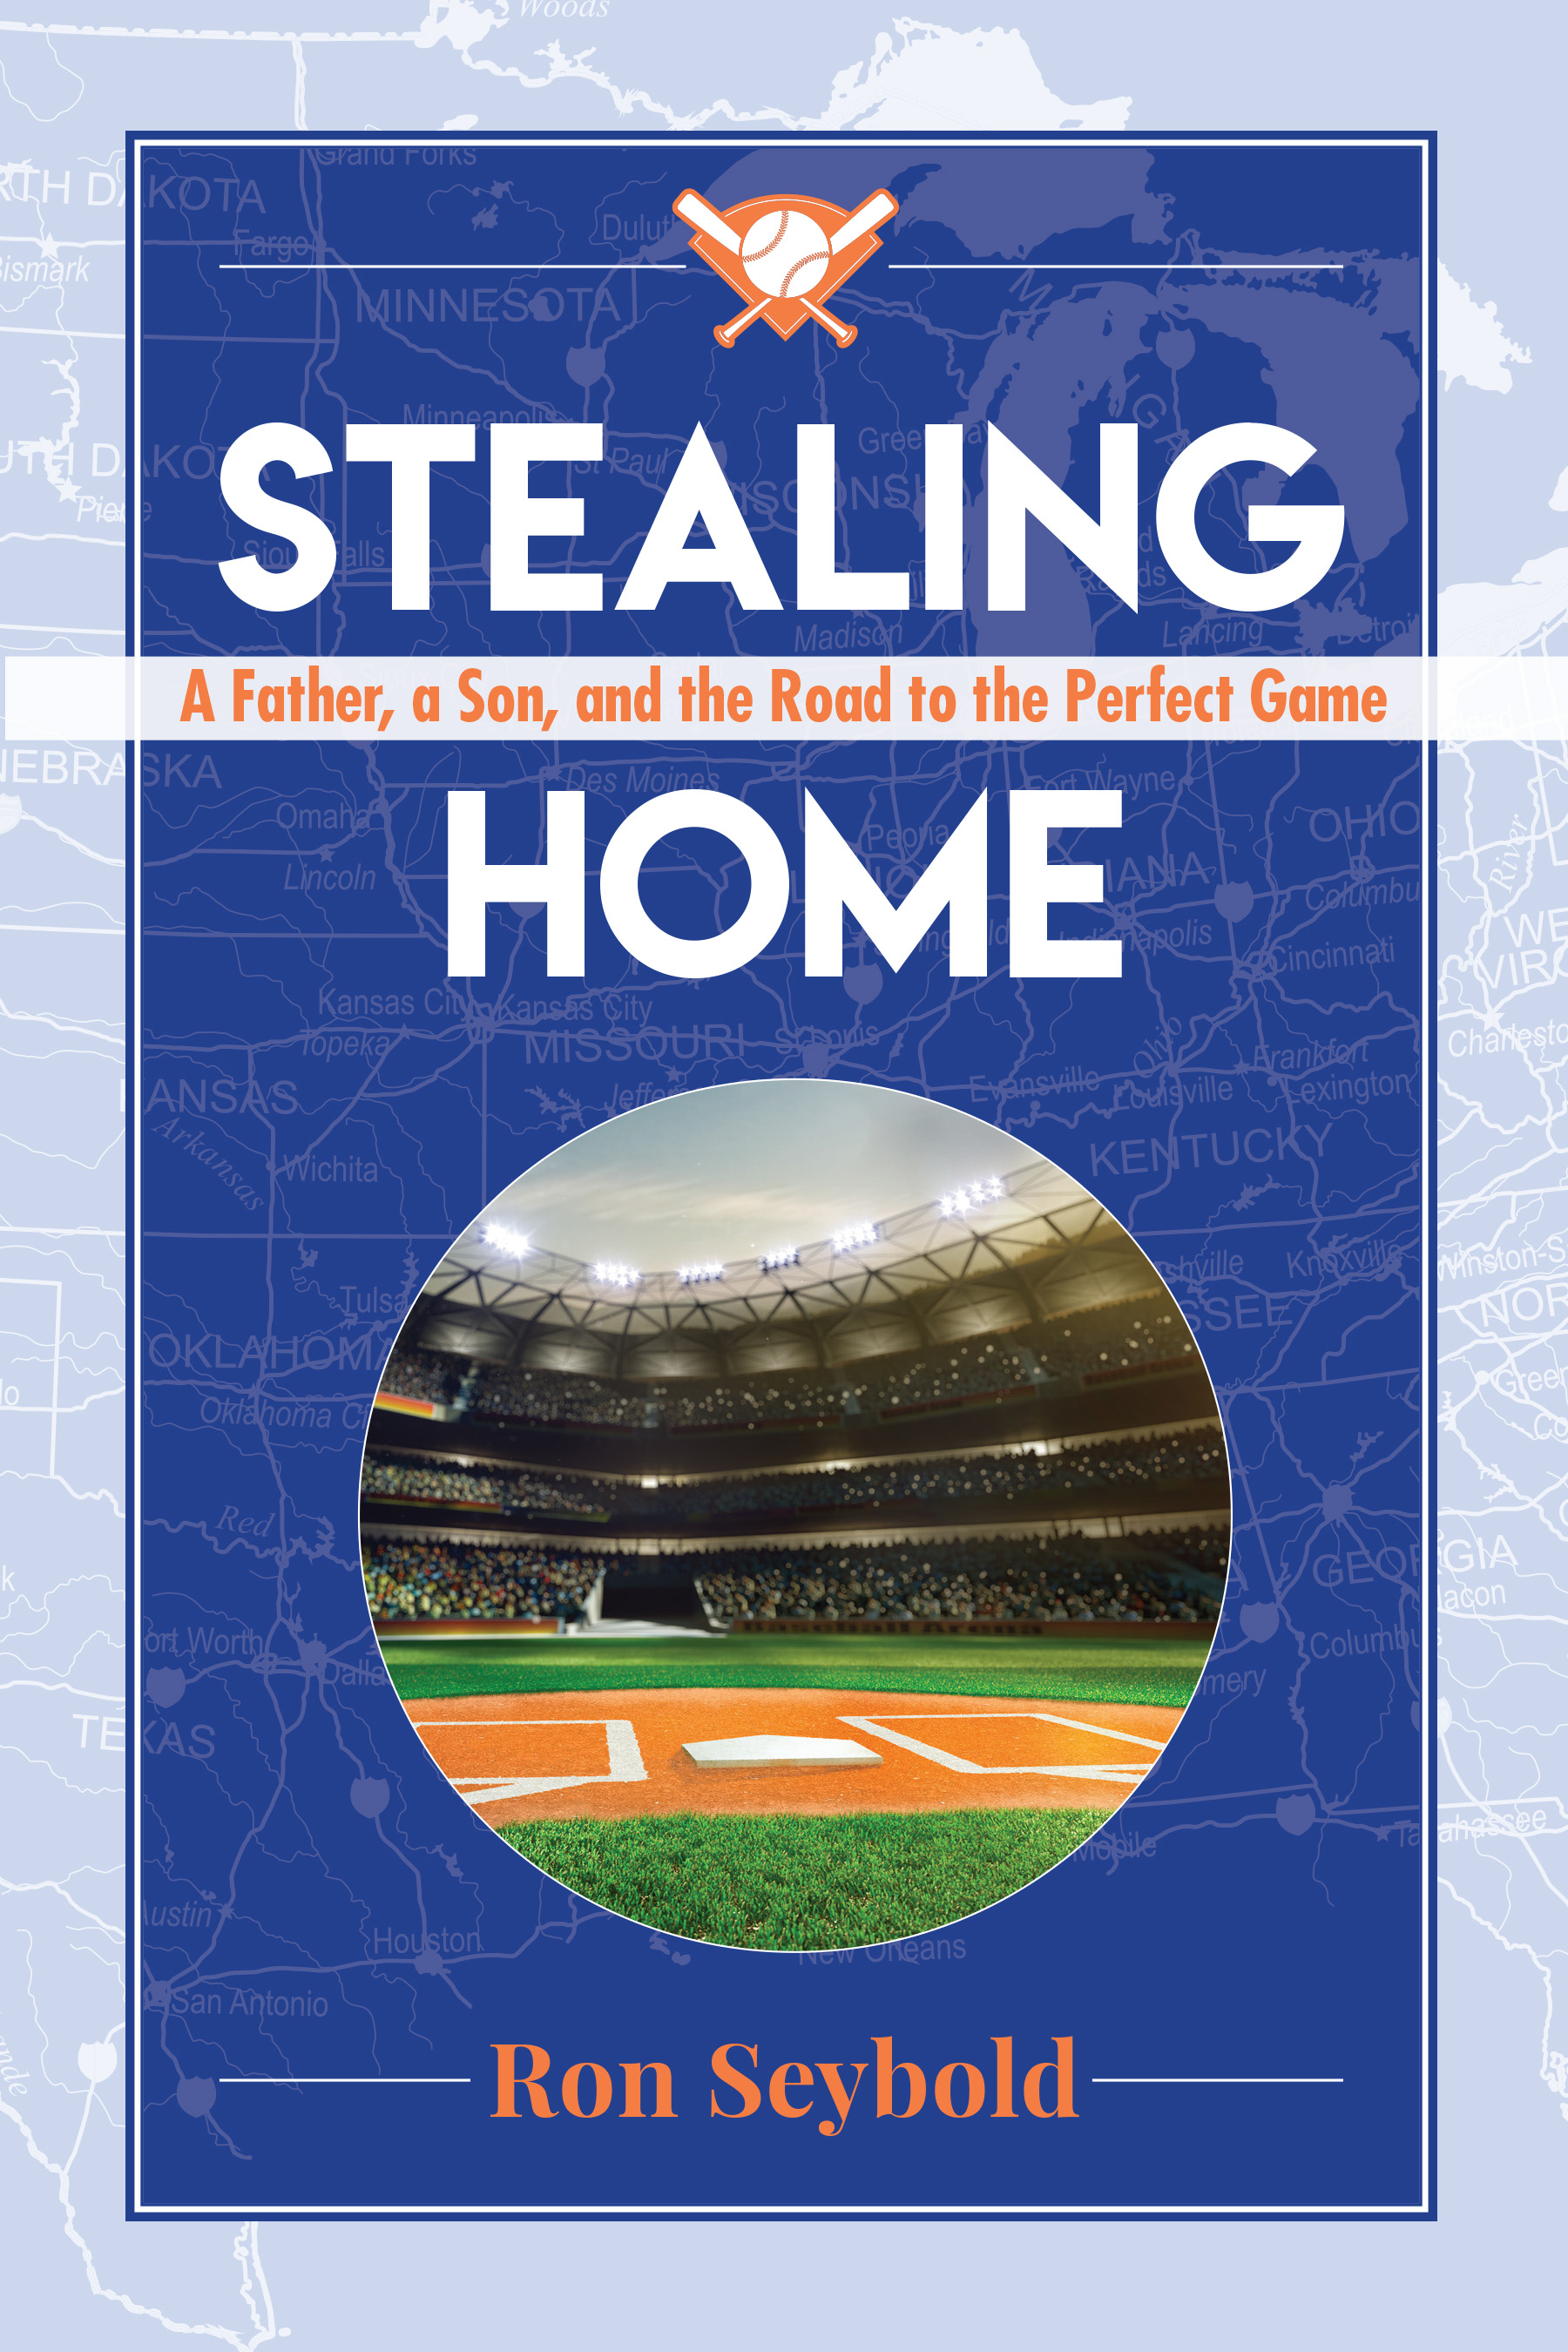 StealingHome_FrontCover.jpg